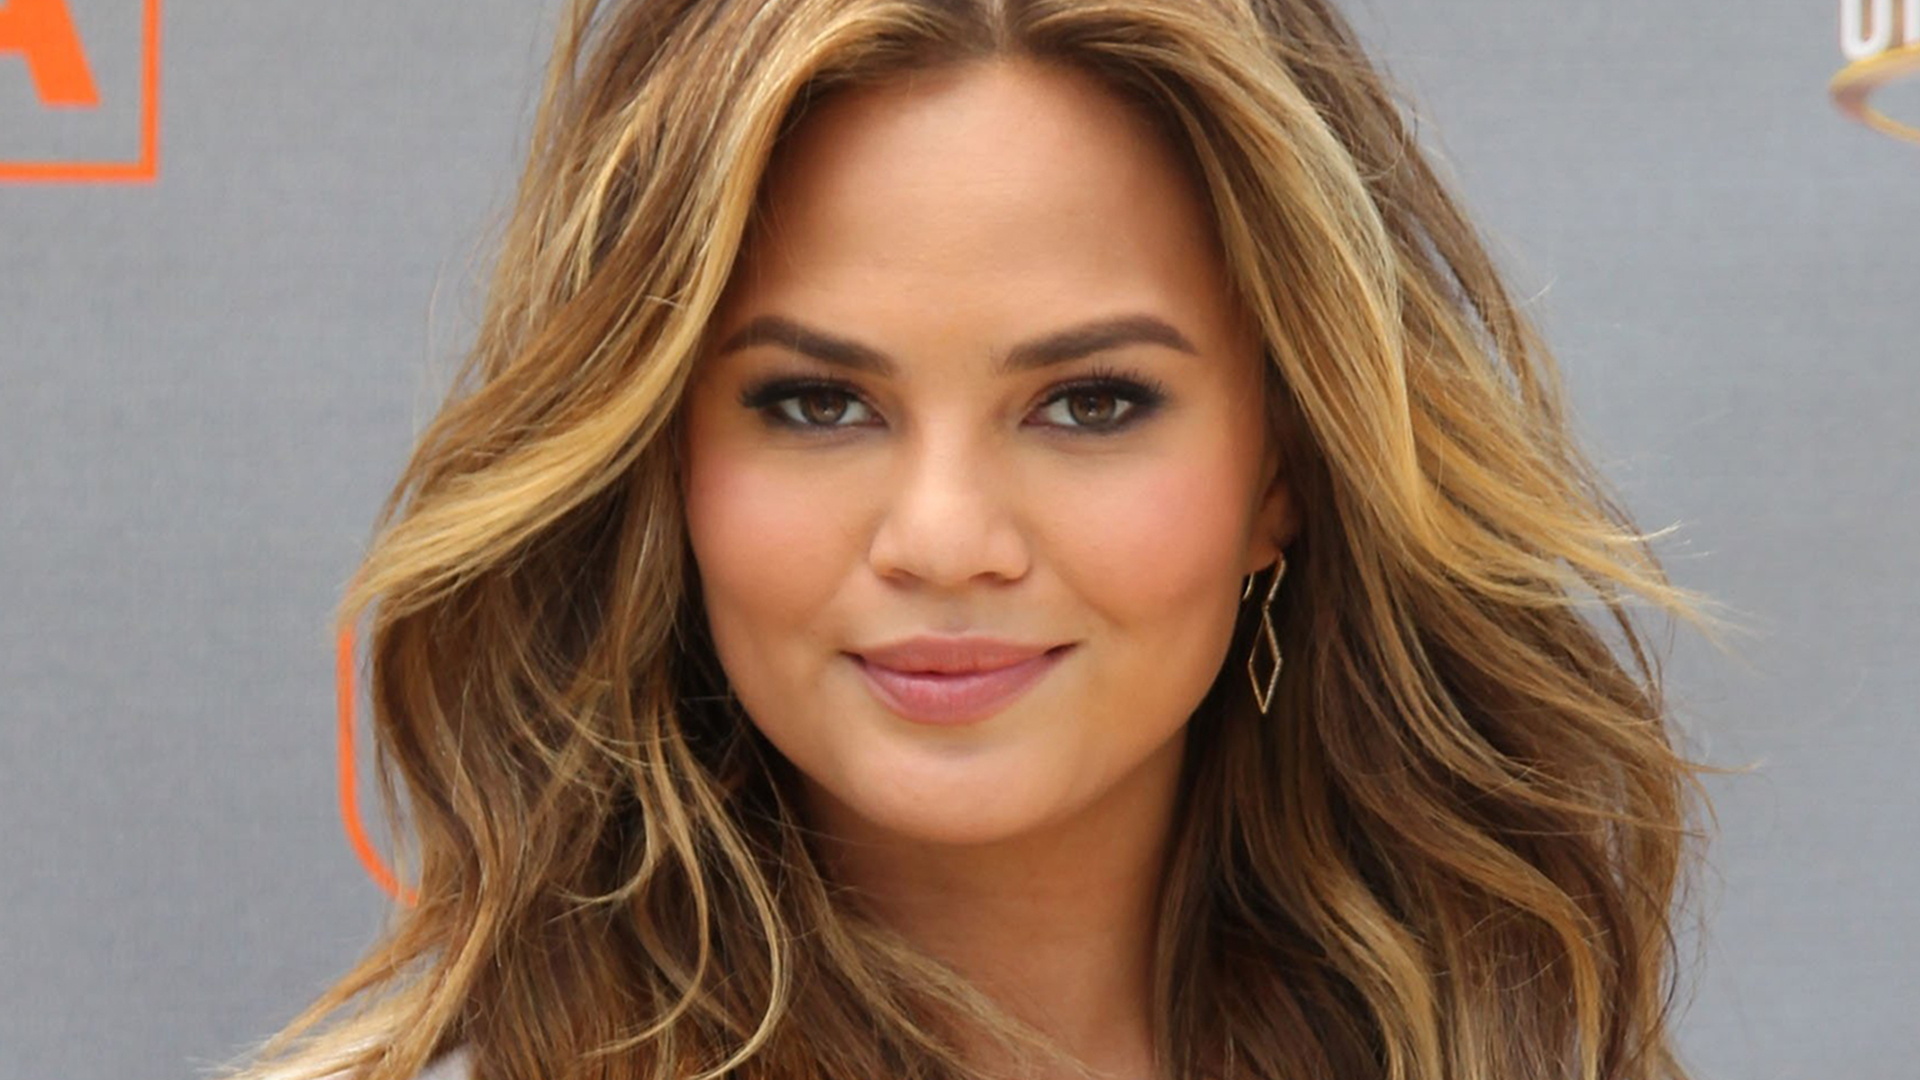 "UNIVERSAL CITY, CA - MAY 20: Model Chrissy Teigen visits ""Extra"" at Universal Studios Hollywood on May 20, 2015 in Universal City, California. (Photo by David Buchan/Getty Images)"